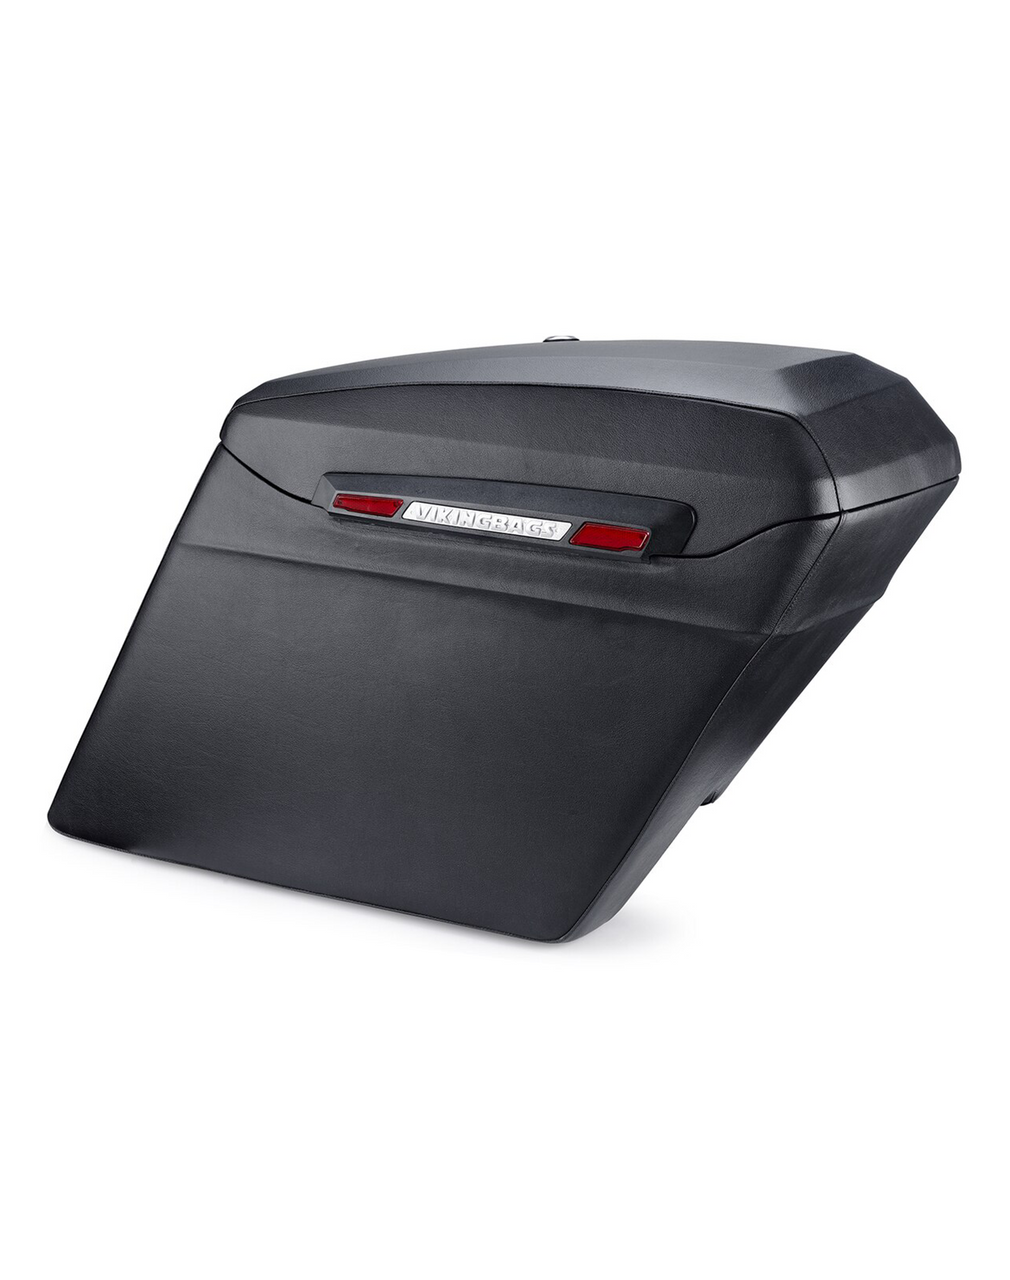 Viking Touring Bagger Leather Covered Extra Large Stretched Saddlebags For Harley Road King Bag View